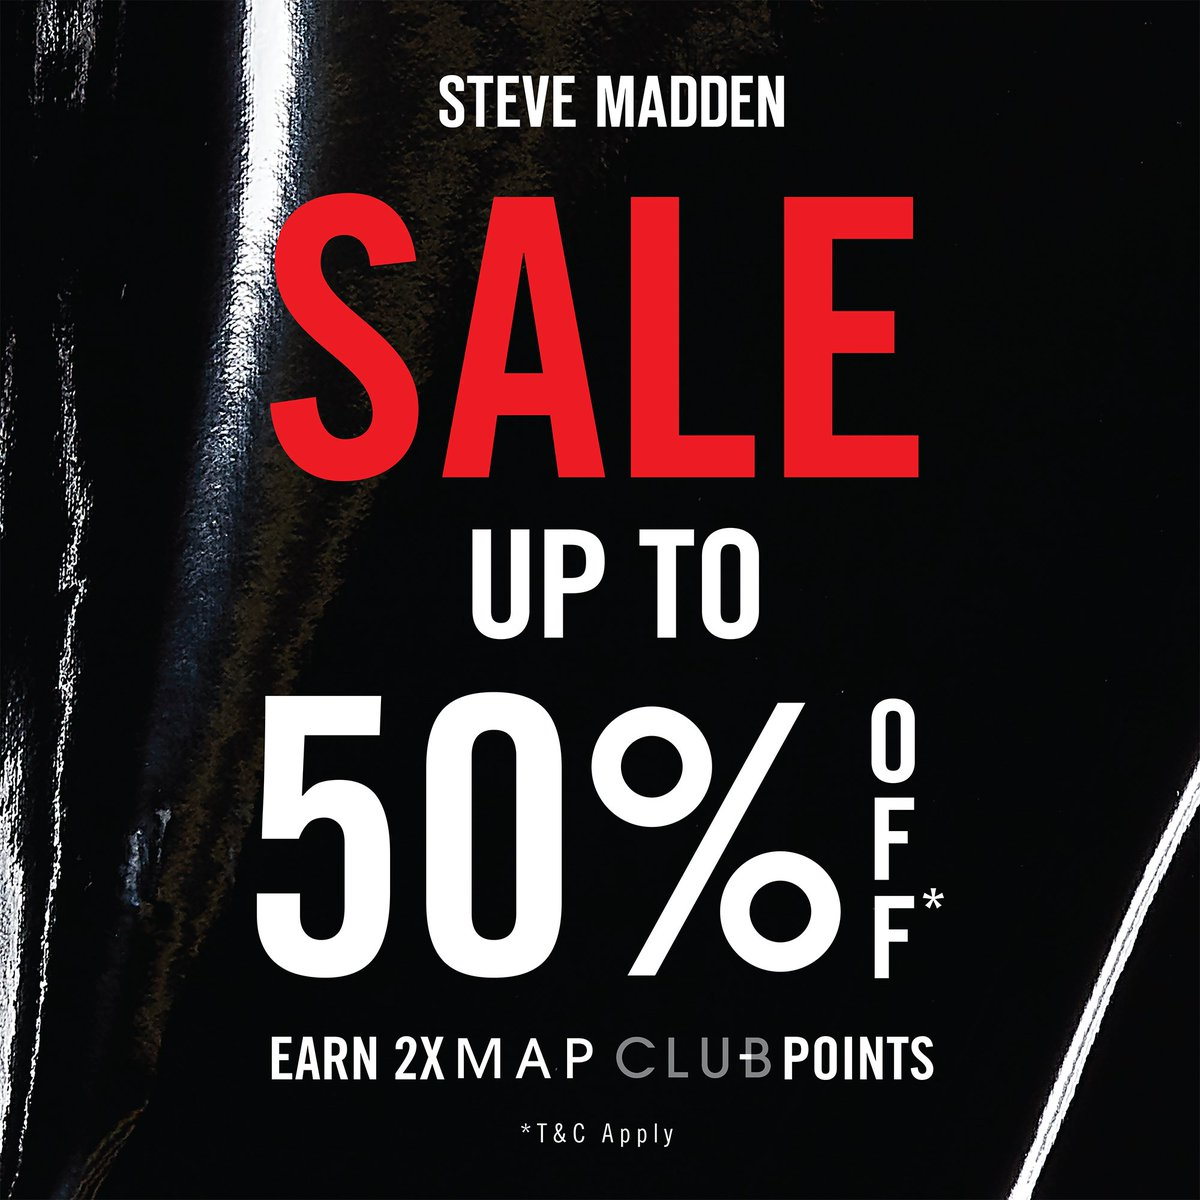 f0c3251b976 Make sure you head down to Steve Madden store and buy more shoes Now! You  can find us at PIM